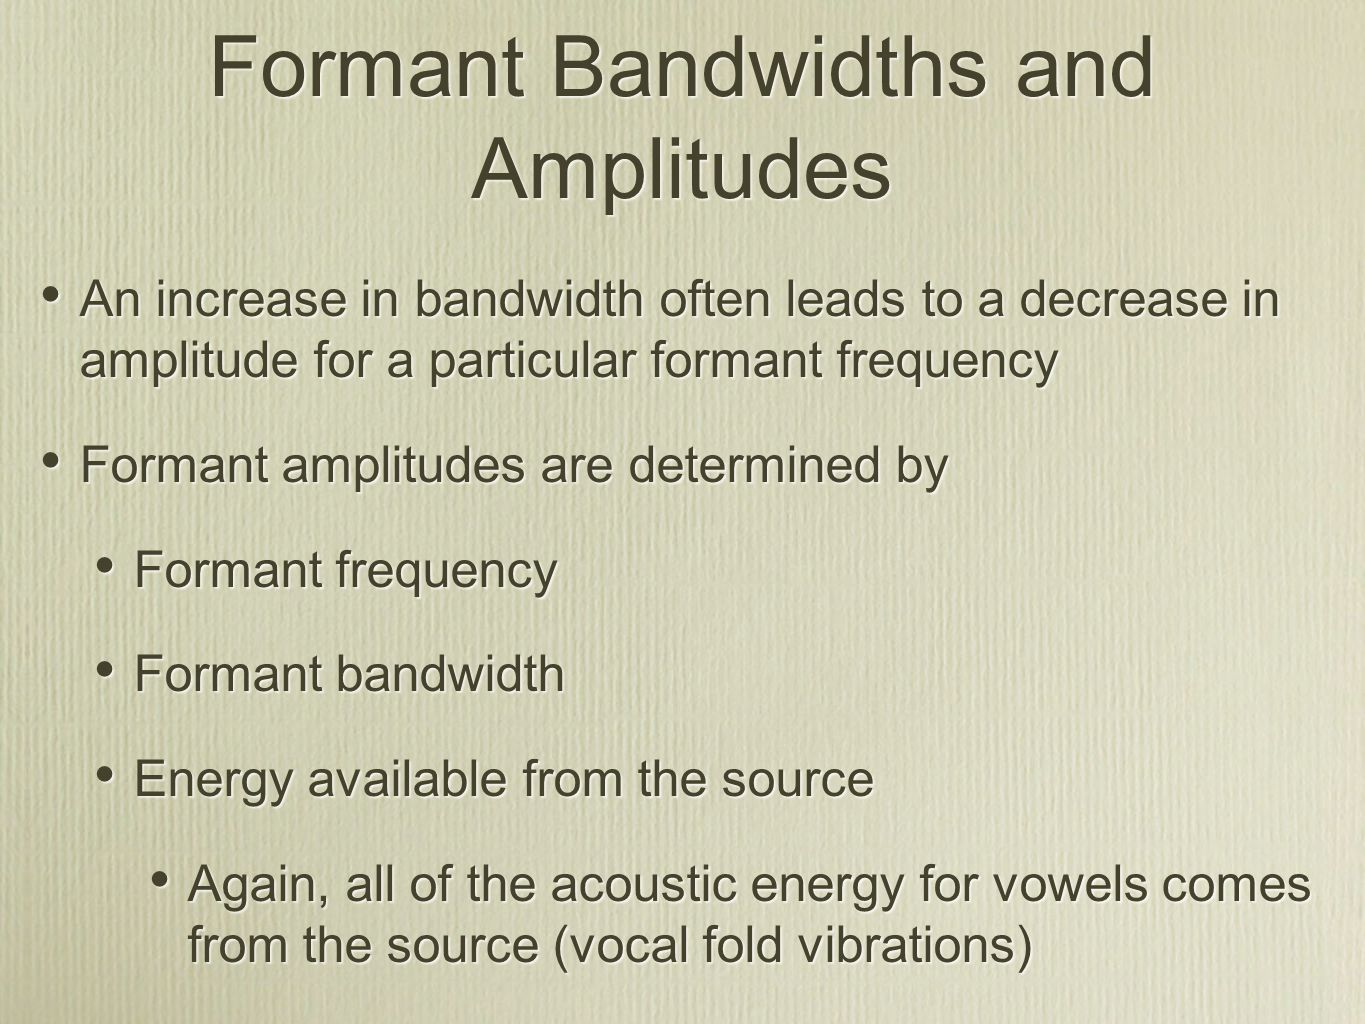 Formant Bandwidths and Amplitudes